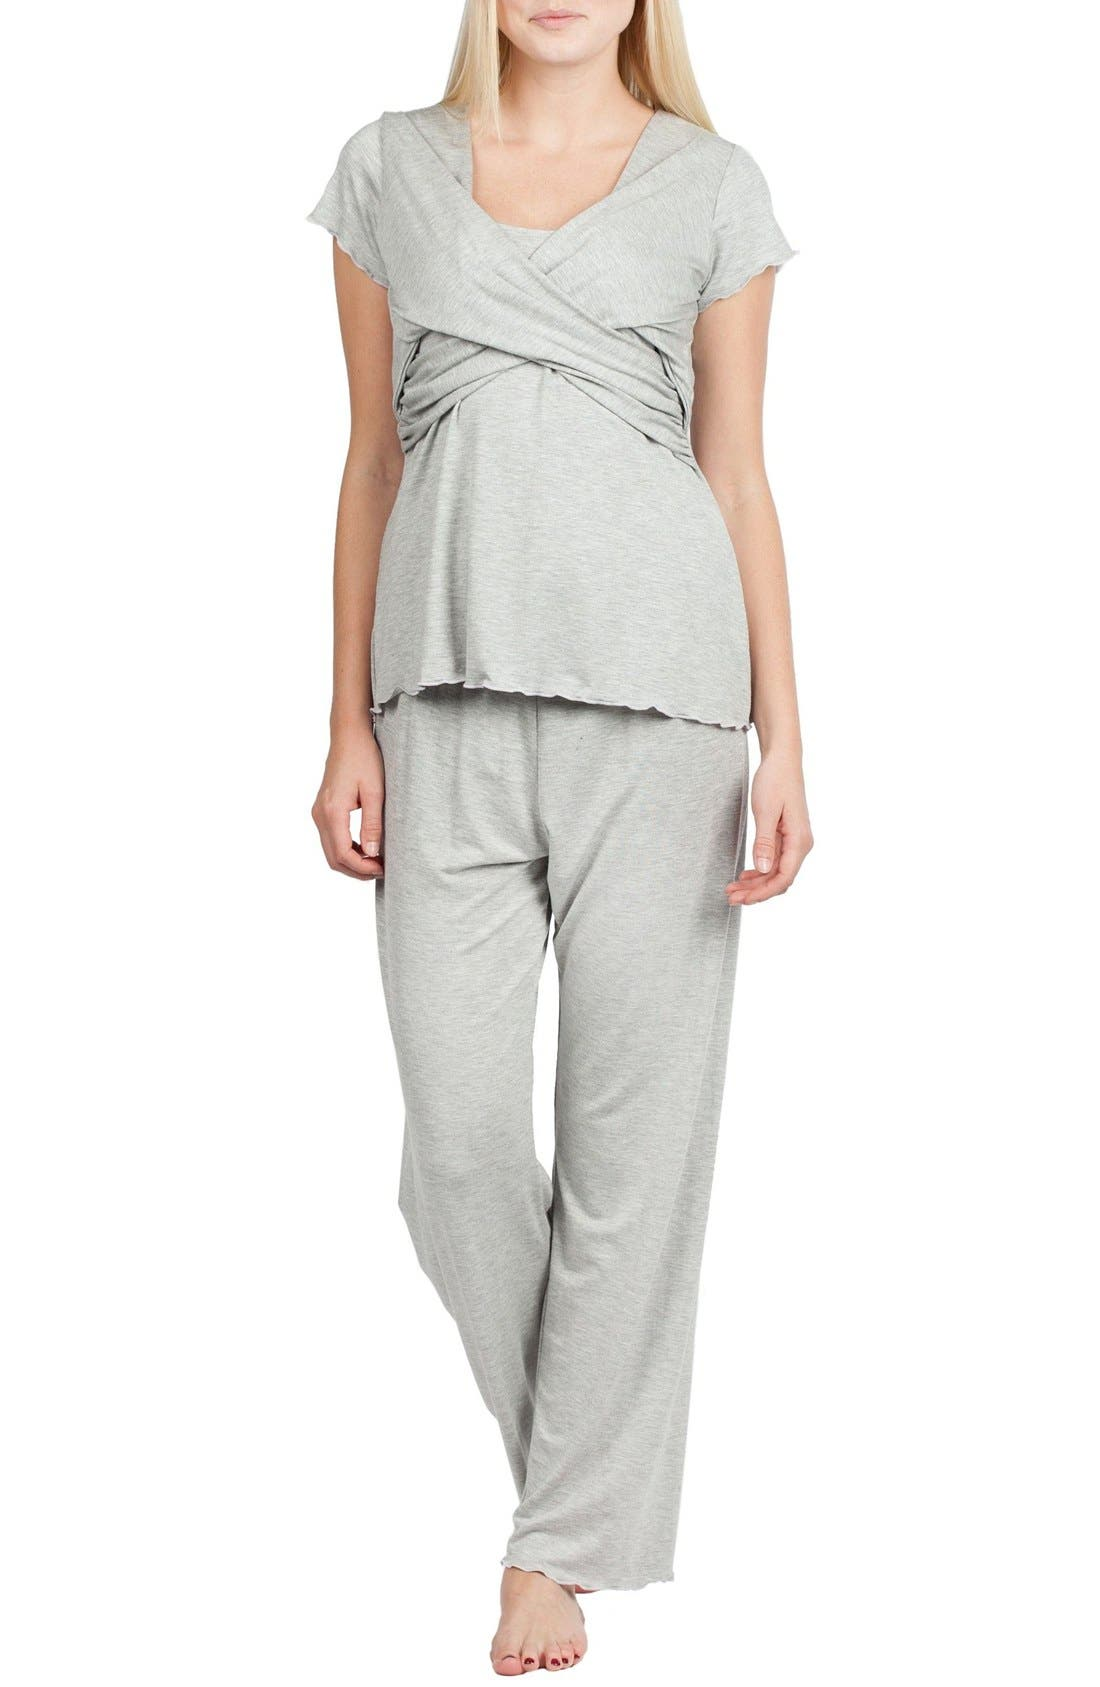 Sophia Maternity/Nursing Pajamas,                             Main thumbnail 1, color,                             HEATHER GREY